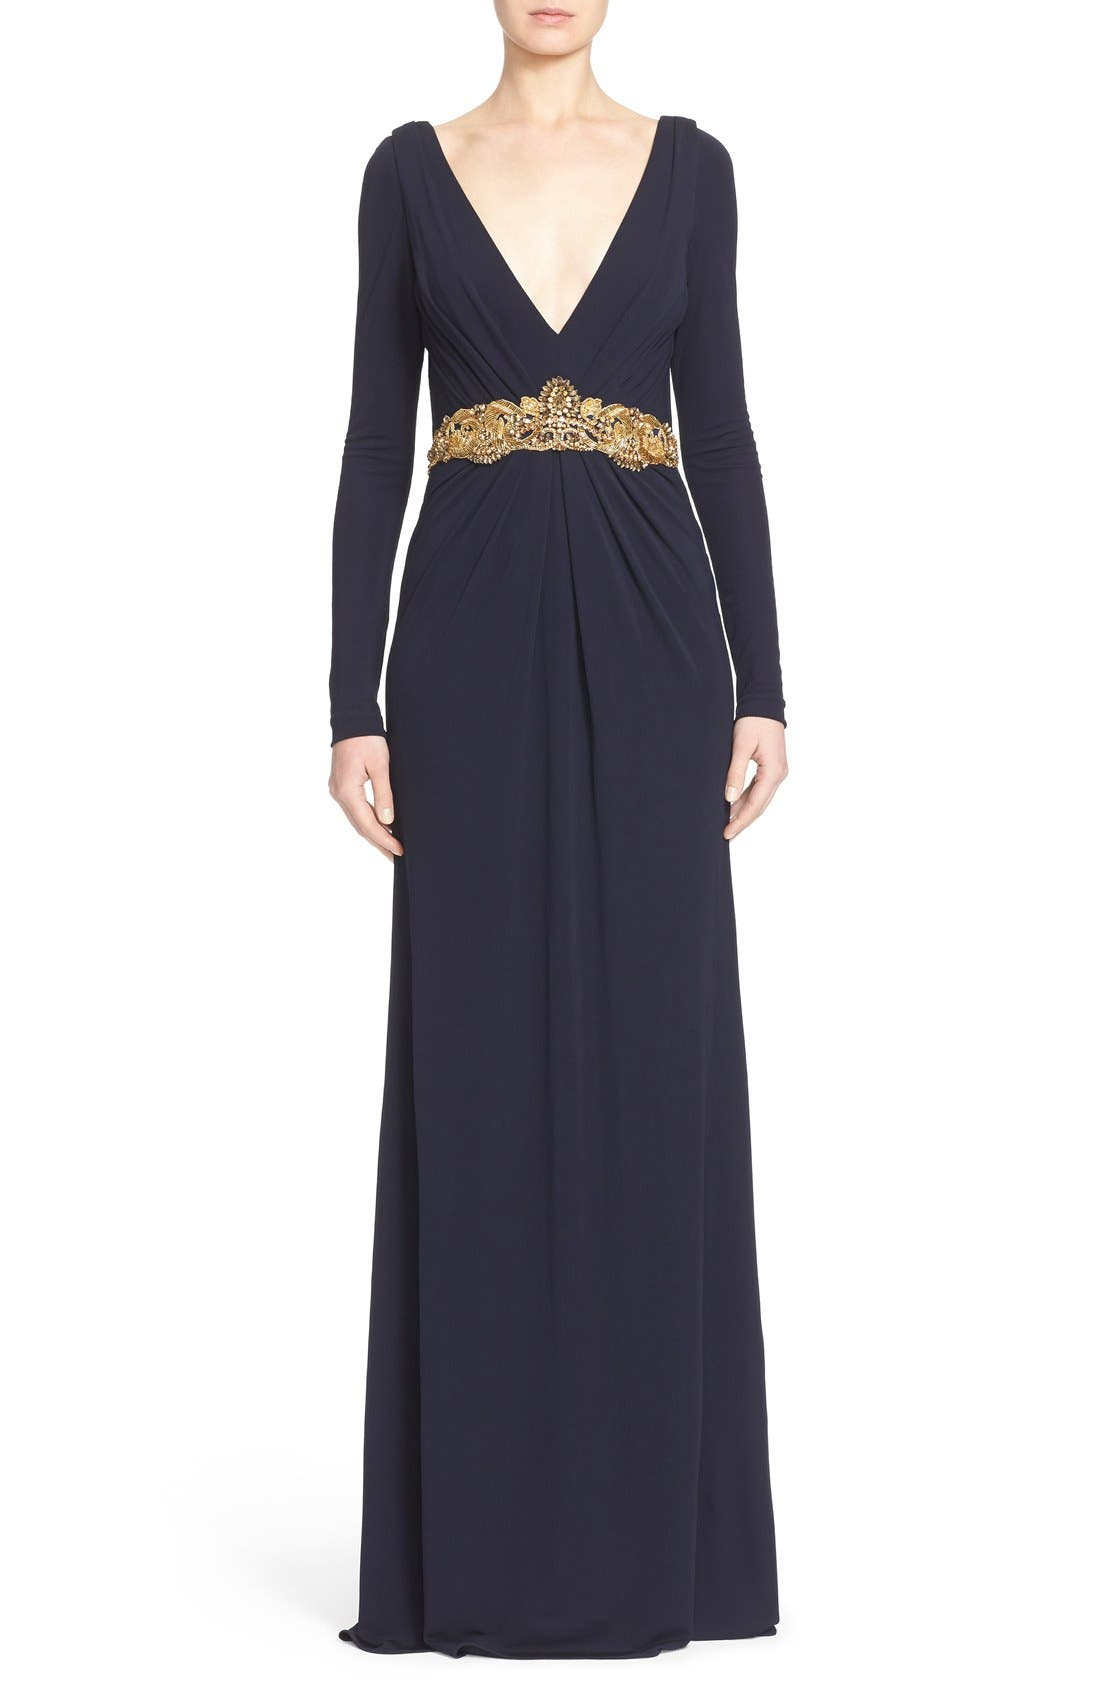 Main Image - Badgley Mischka Couture Embellished Waist Plunging V-Neck Jersey Gown